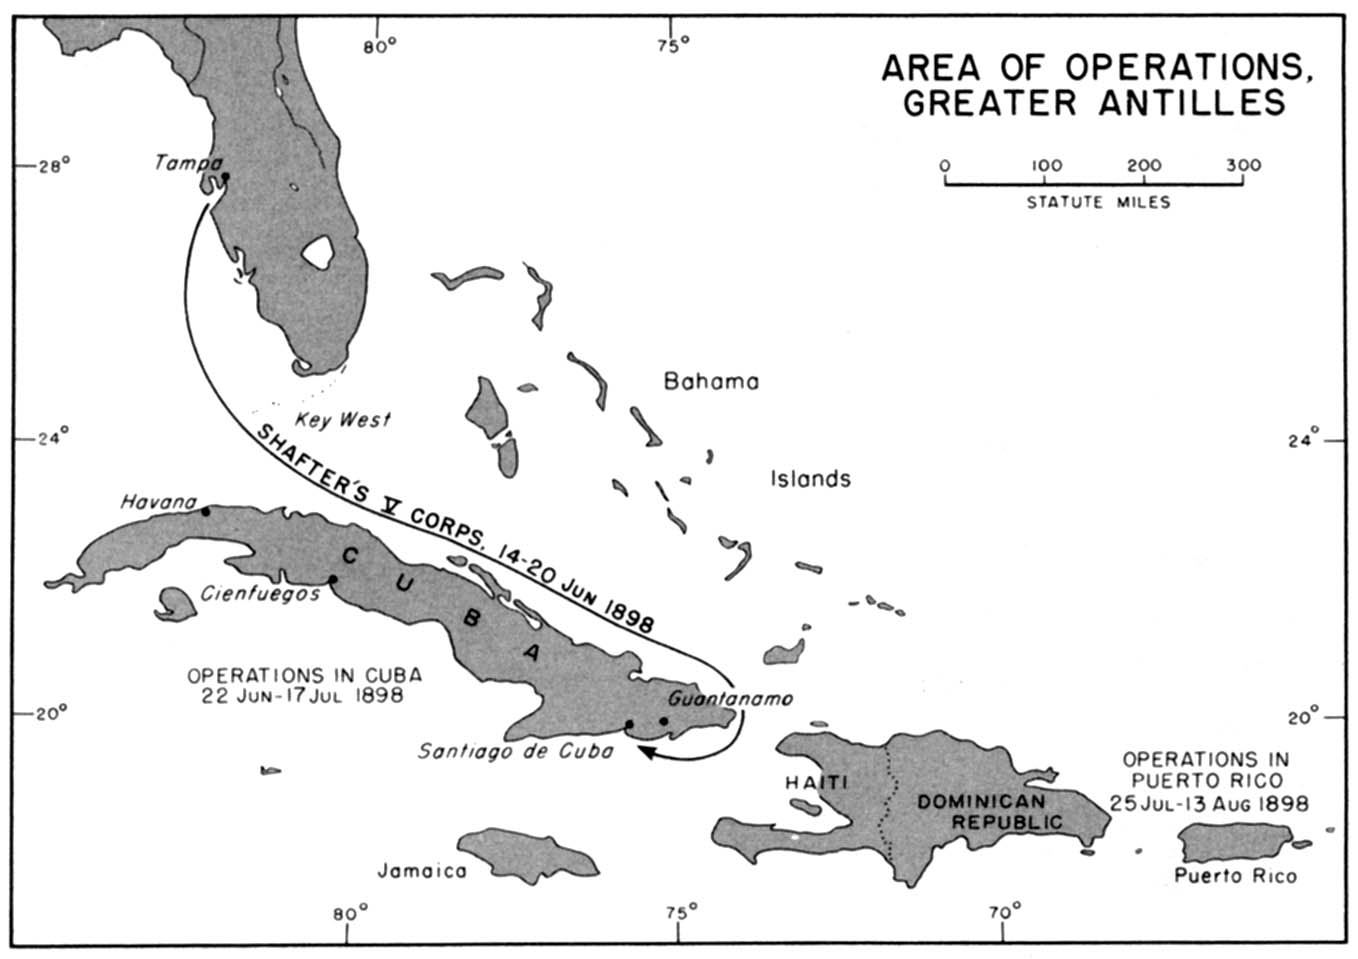 Greater Antilles Area Operations Map, Spanish - American War 1898